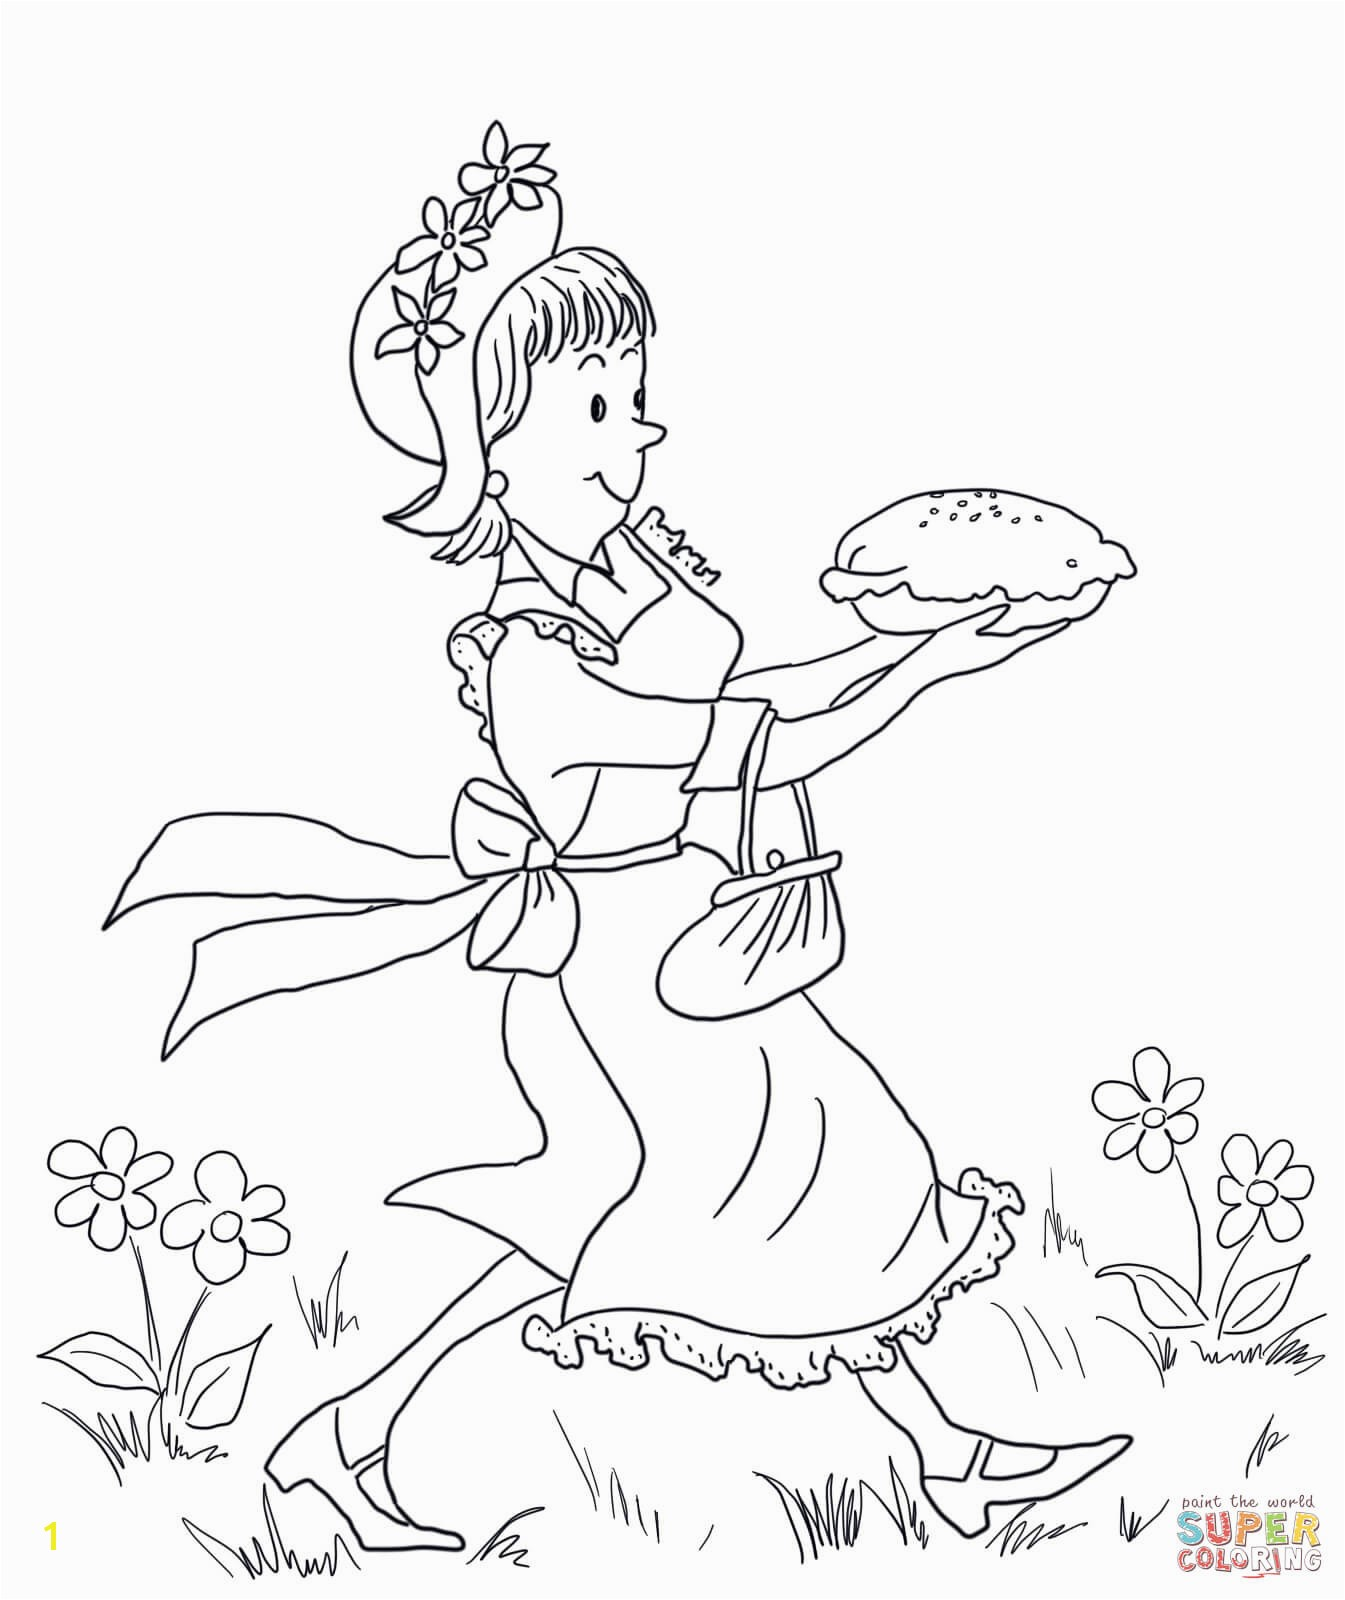 Guaranteed James And The Giant Peach Coloring Page Seagulls Carrying Free